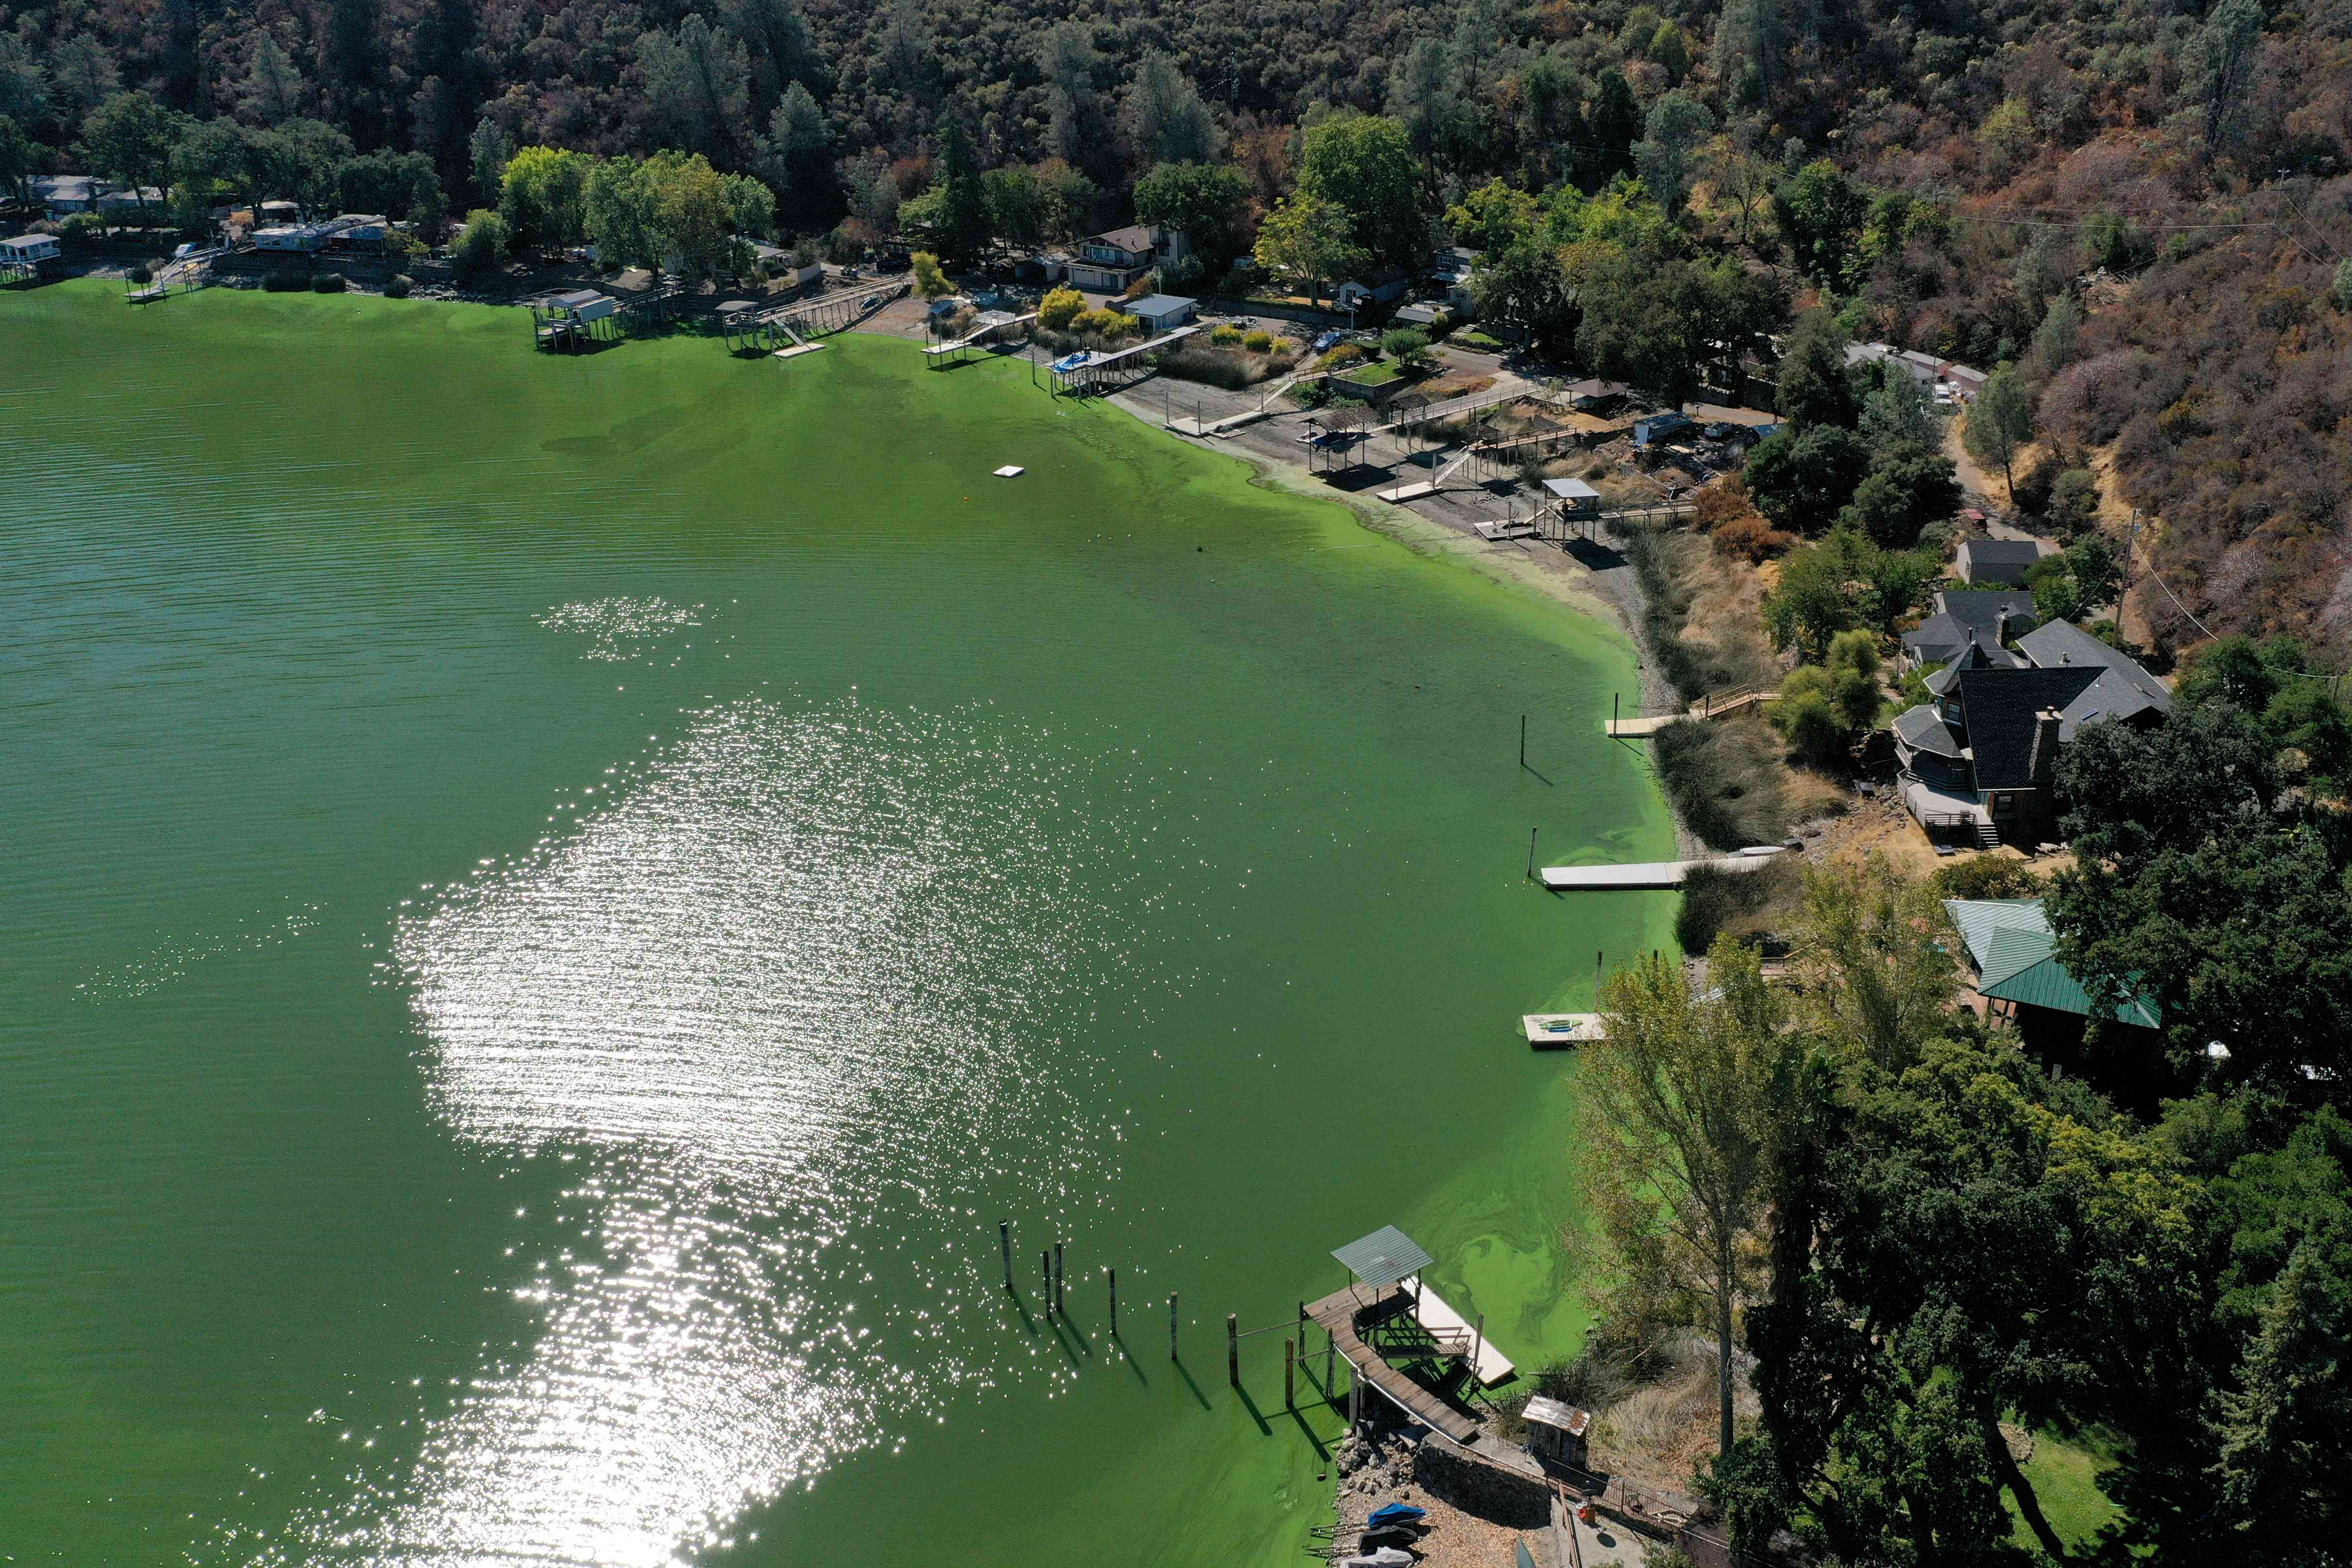 Cyanotoxin Outbreak Due To Dry, Hot Summer Threatens Water Supply In Clear Lake, California